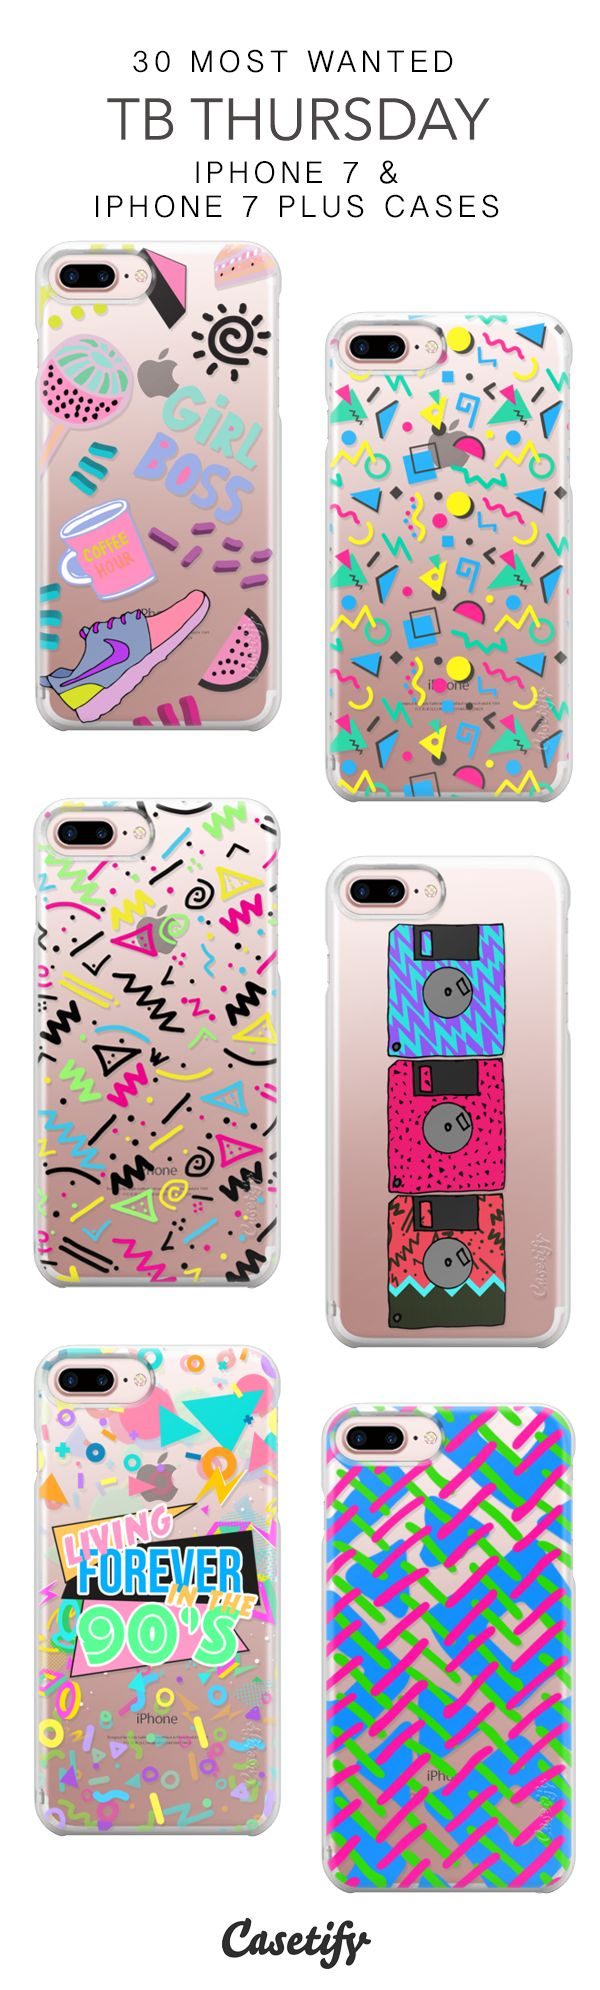 30 Most Wanted TB Thursday Protective iPhone 7 Cases and iPhone 7 Plus Cases. More 90s Vibes iPhone case here > https://www.casetify.com/collections/top_100_designs#/?vc=o1sjDUvoa6